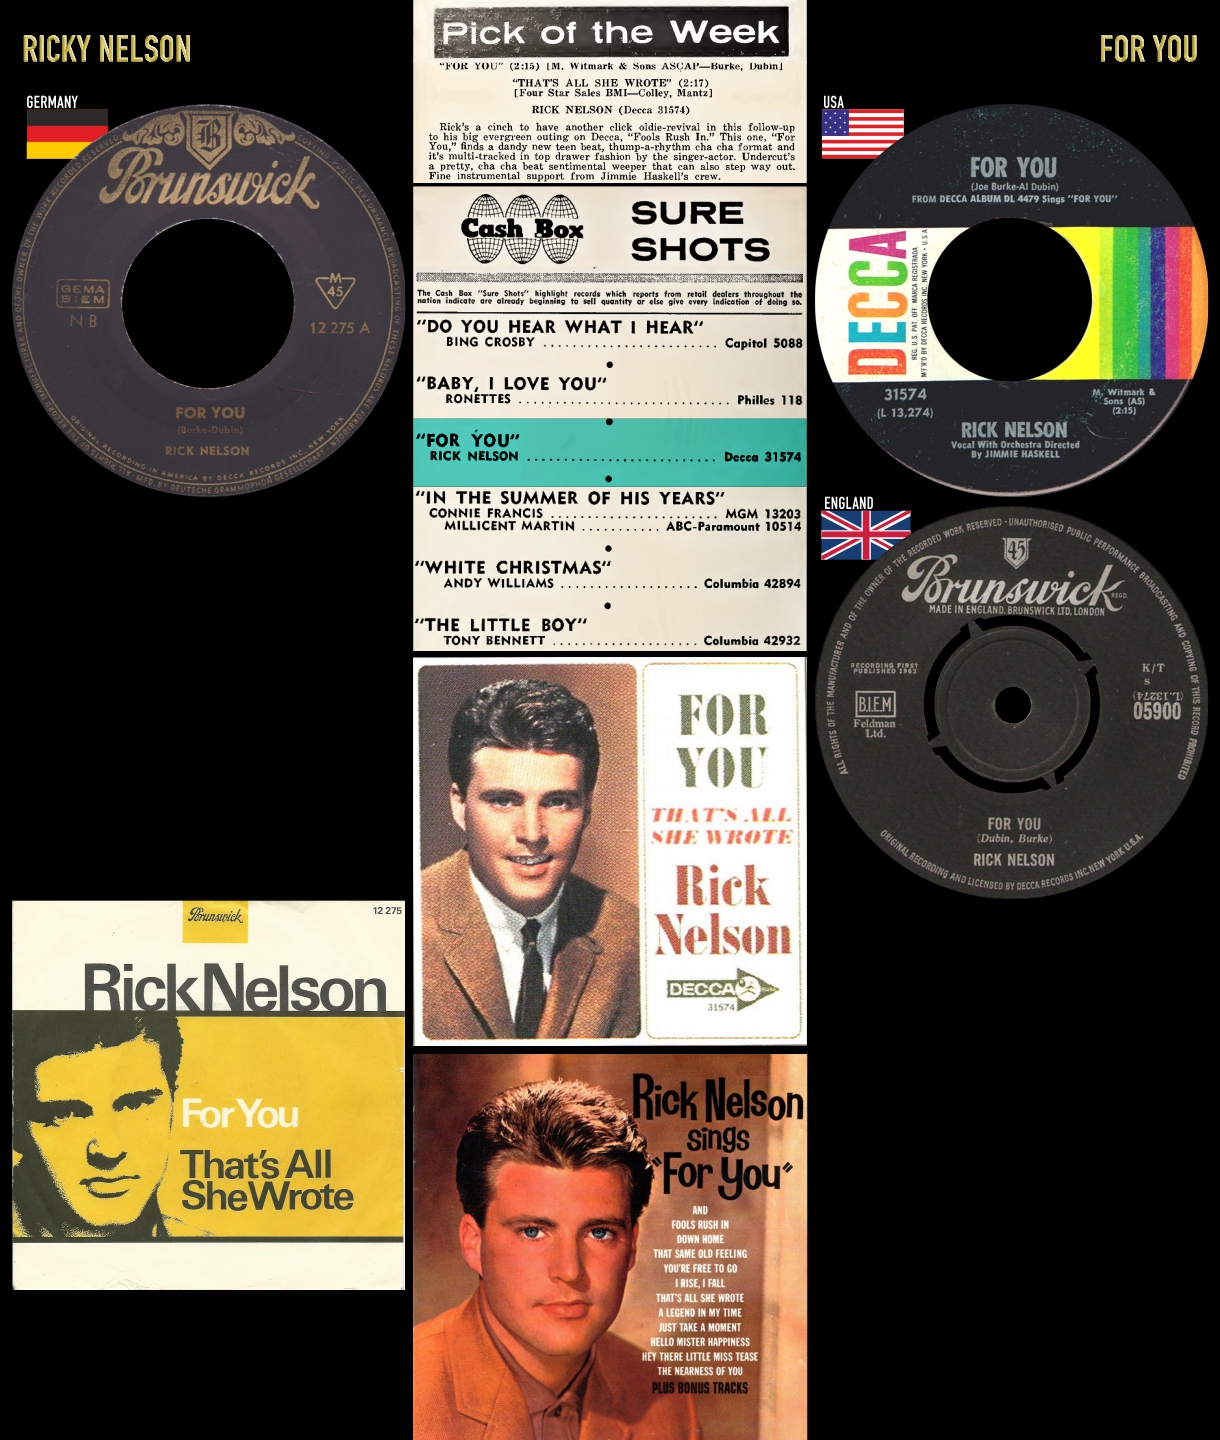 631228_Ricky Nelson_For You